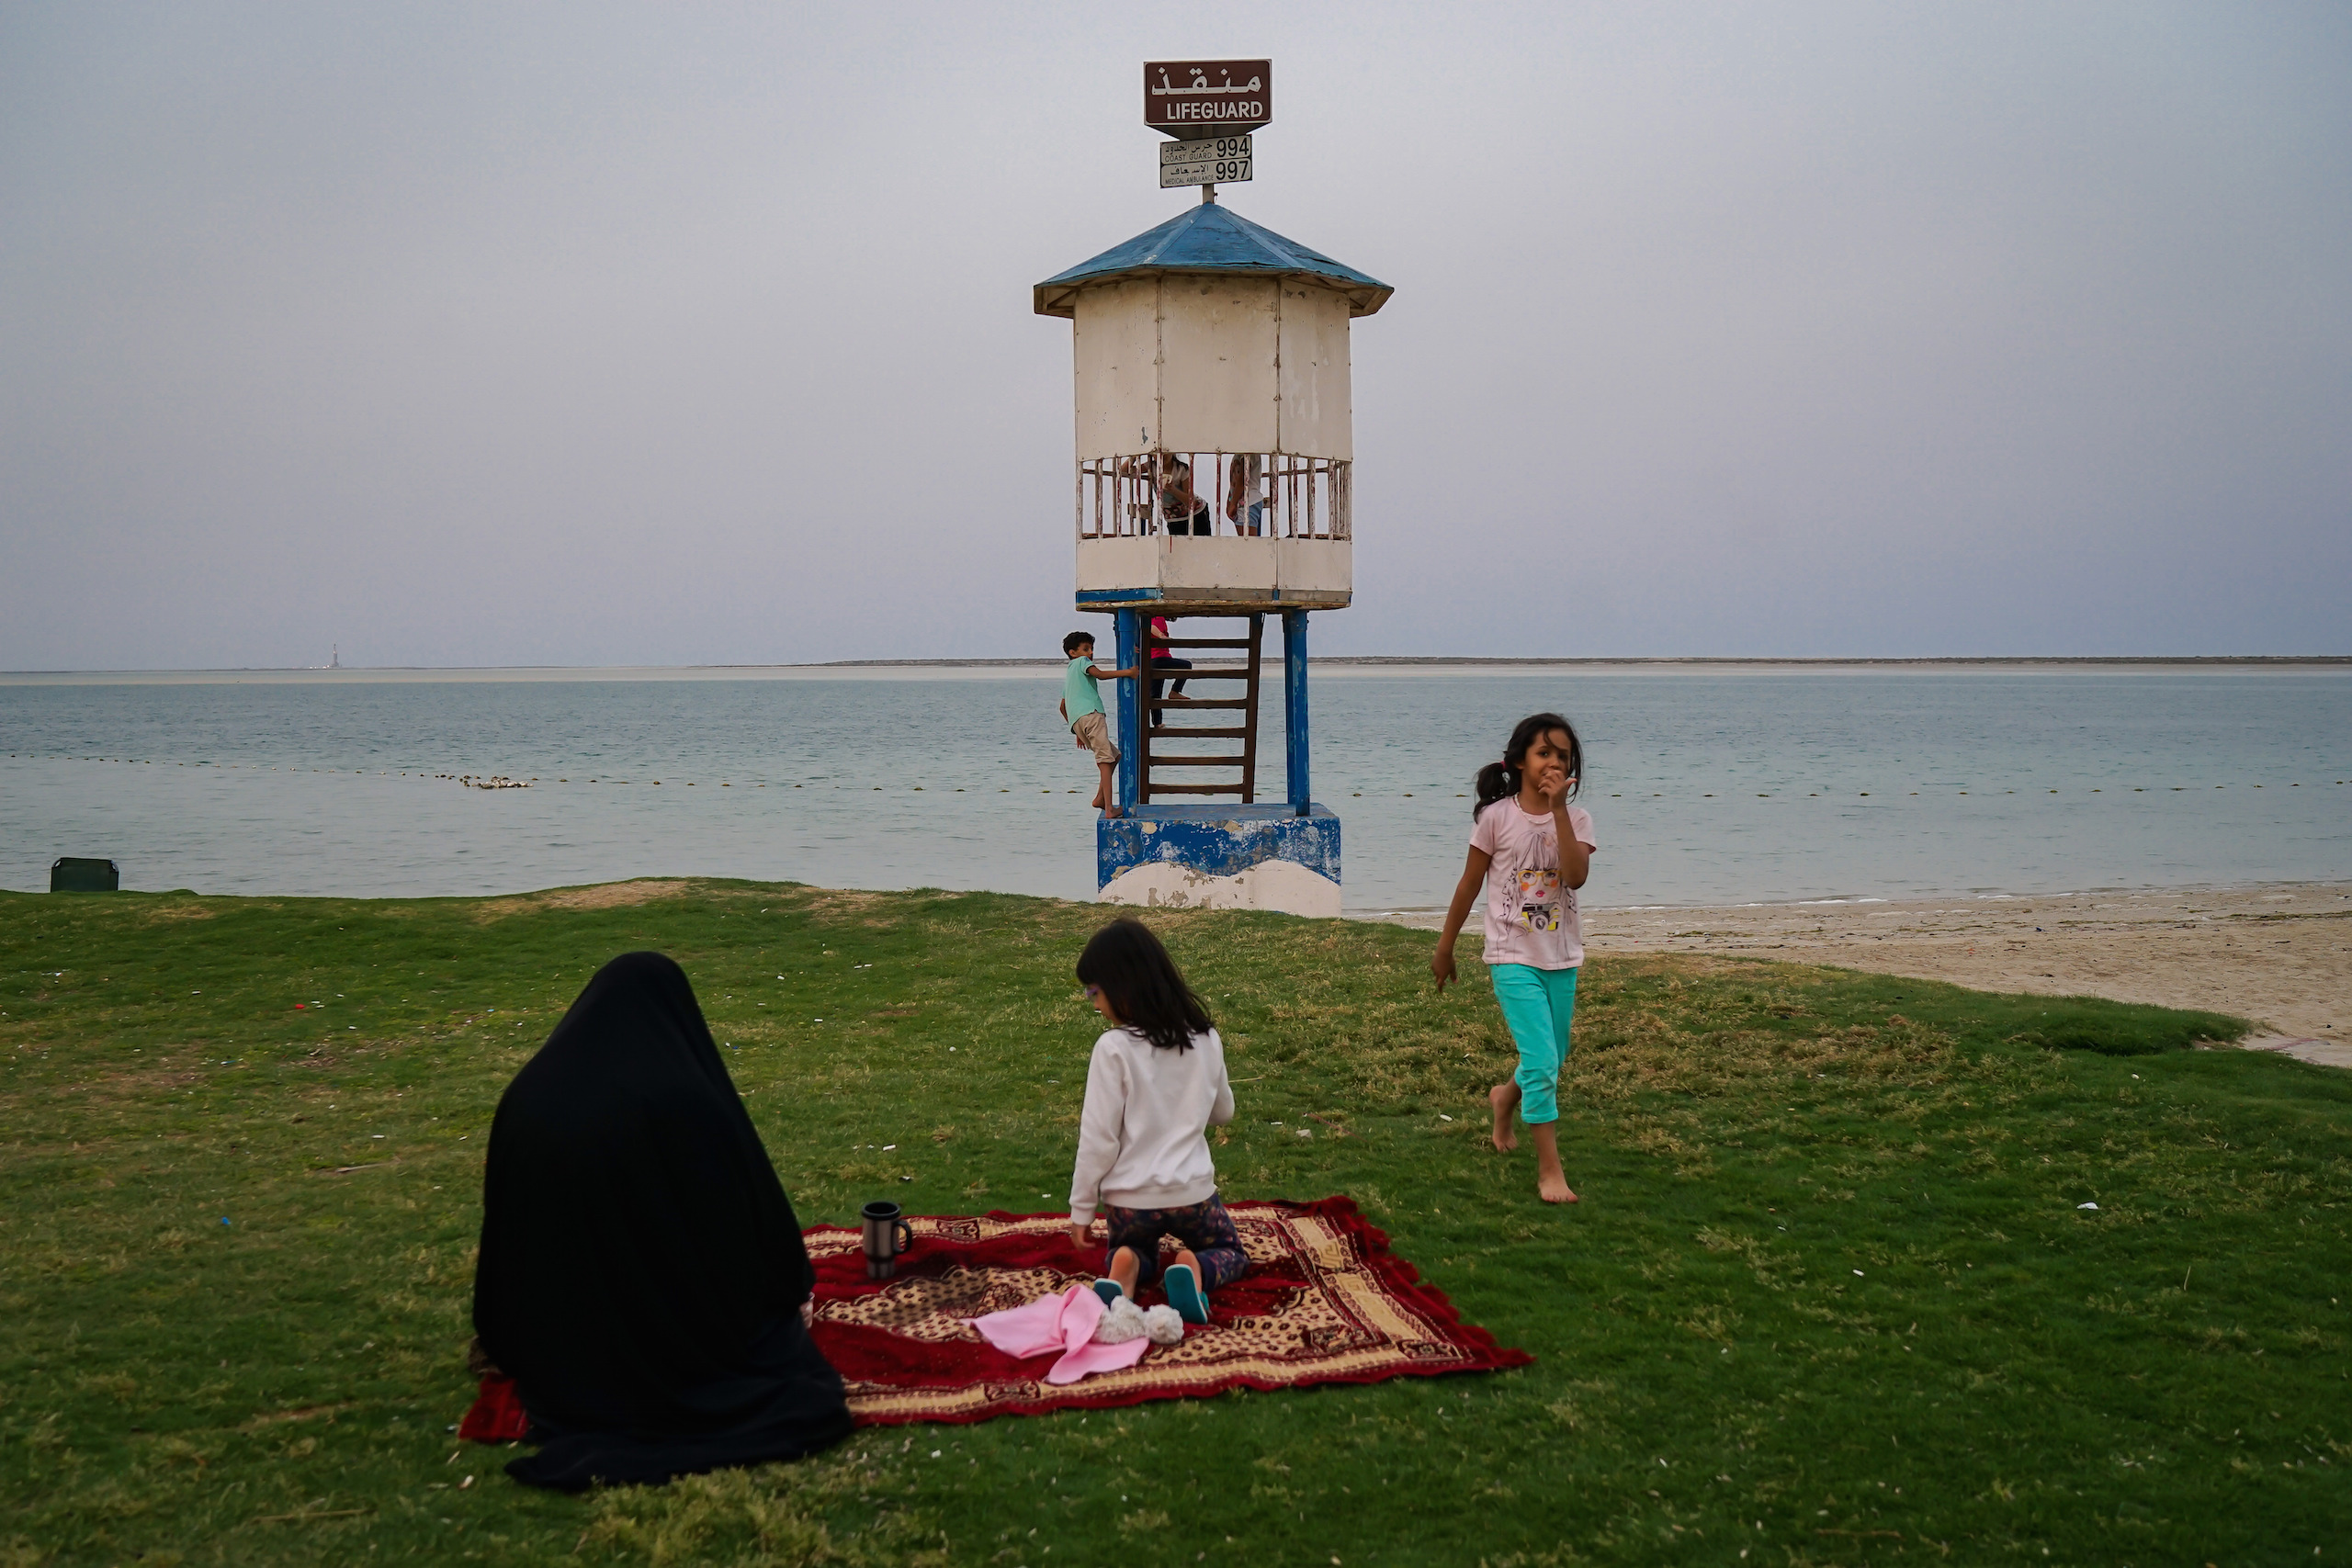 A six-year-old girl walks out of the lifeguard booth full of kids, but no lifeguard, in Jubail Industrial City, April 2016.  Why are you taking a picture?  she asked the photographer, who replied,  perhaps because these images preserve time?  Her father was standing nearby. The girl then said,  I will remember that I can't swim here, but my brother can,  before returning to play with other children.